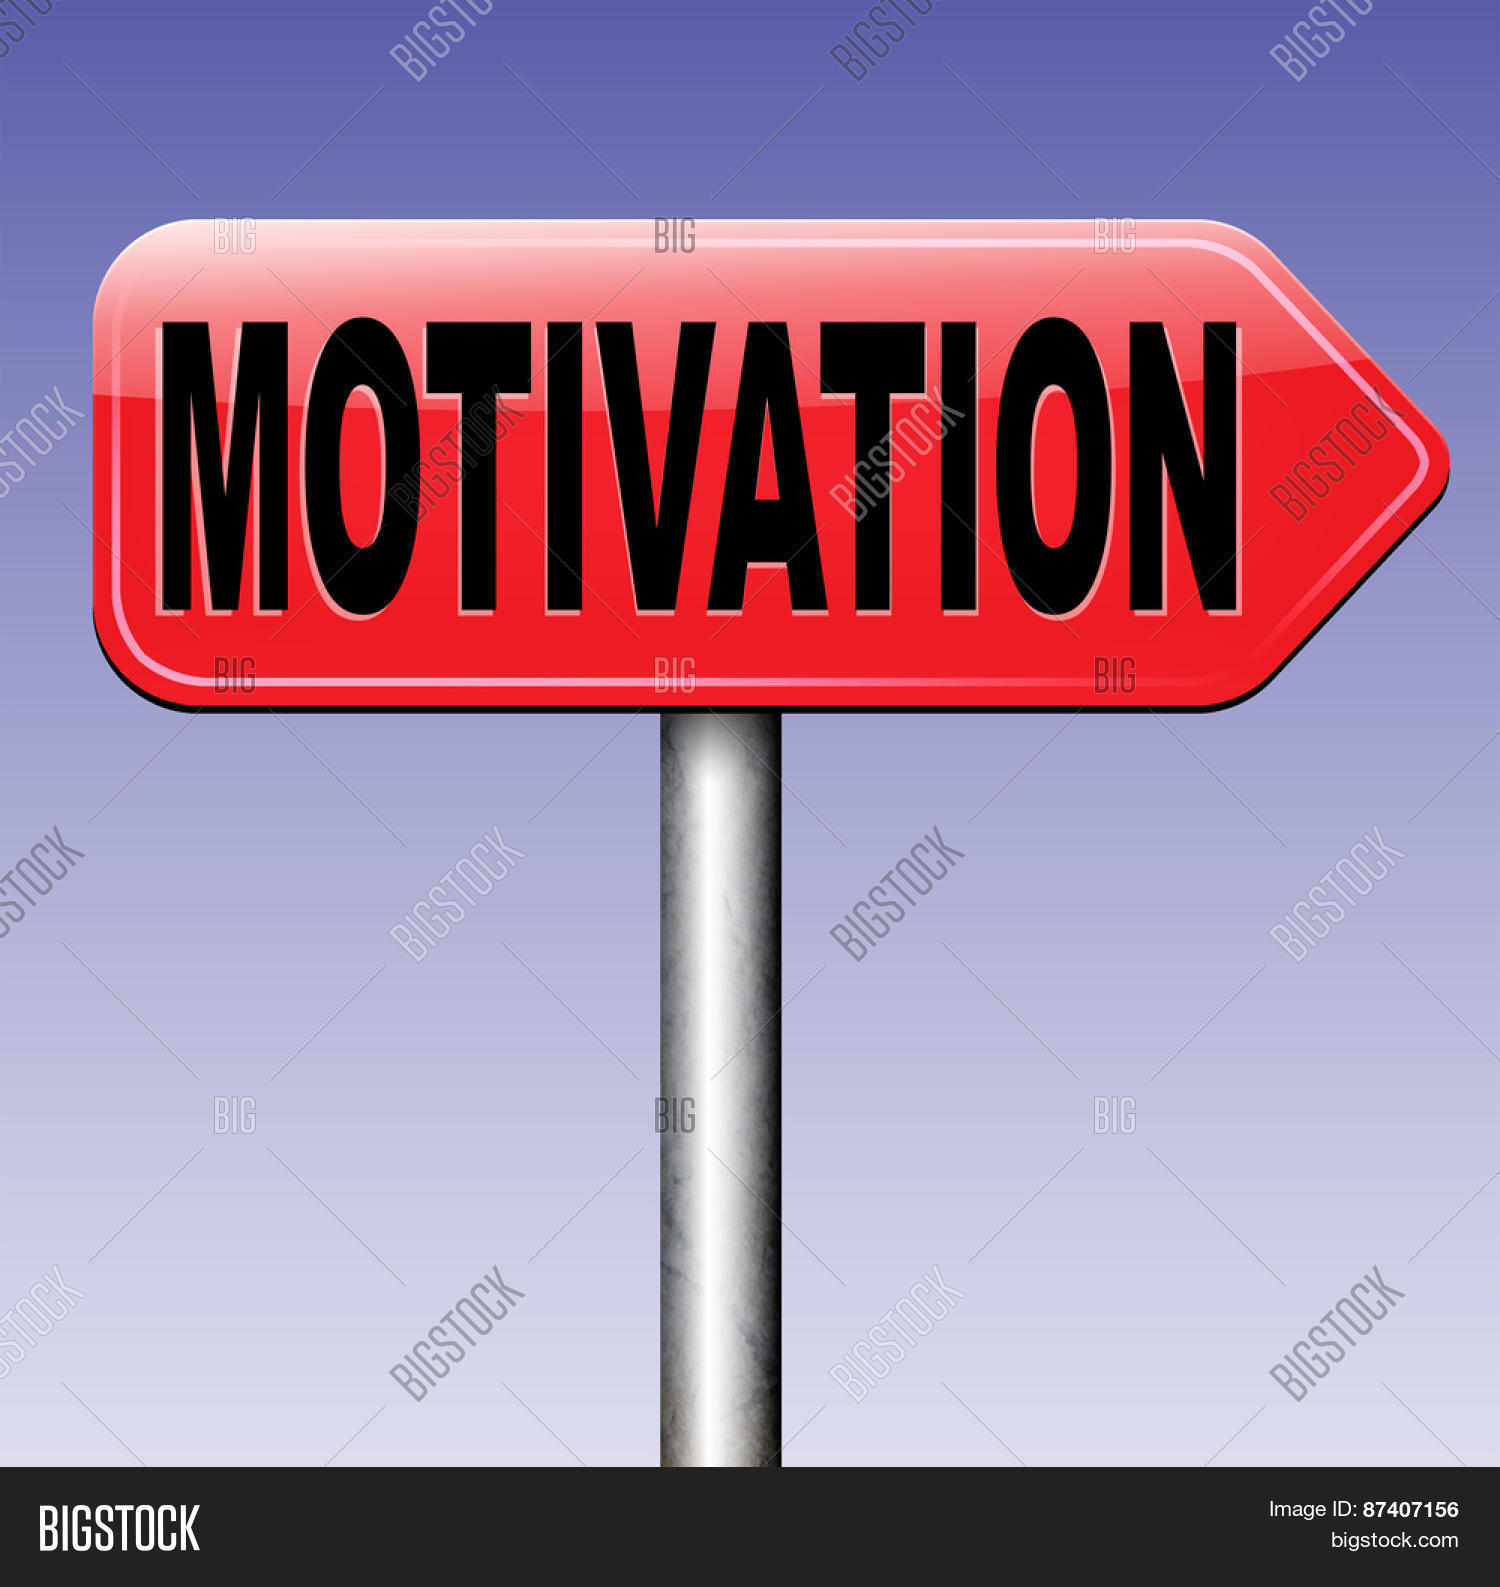 motivation work or job inspiration try again and try hard to go motivation work or job inspiration try again and try hard to go for it and to